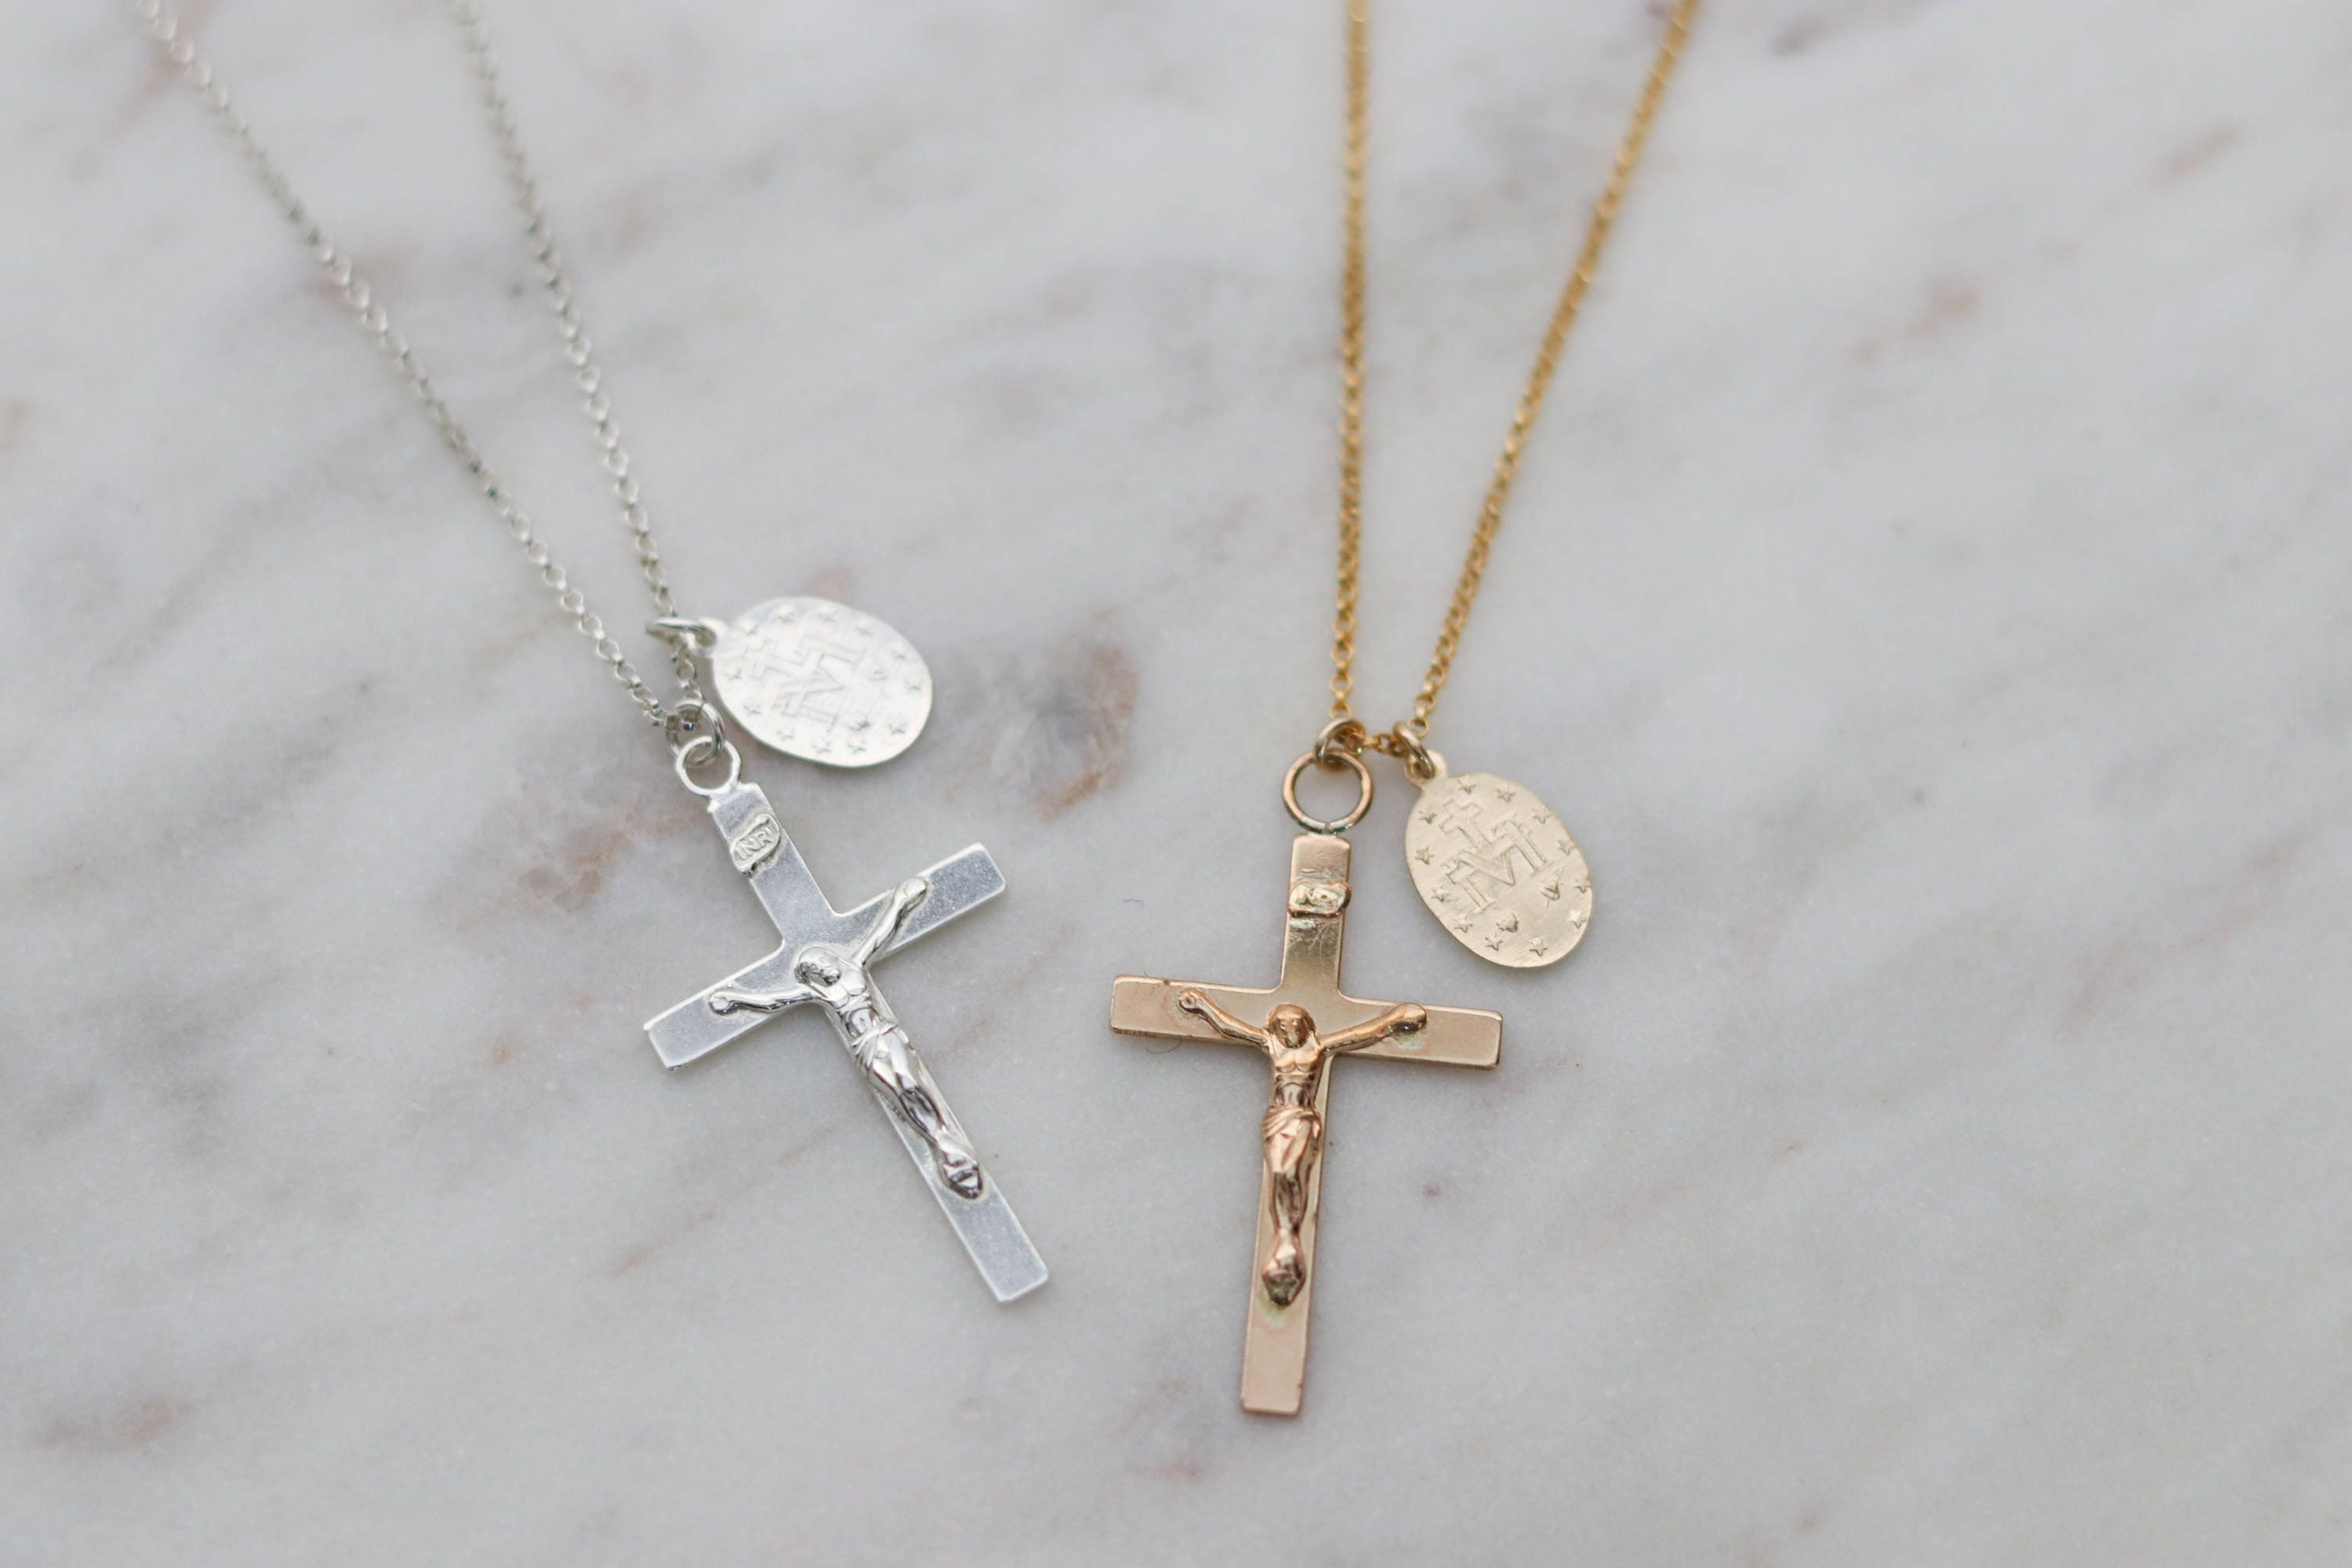 Gold Crucifix Necklace - Miraculous Medal - Religious Jewelry - 14k Gold  Fill or Sterling Silver - Gold Cross Necklace Men Gift for Husband